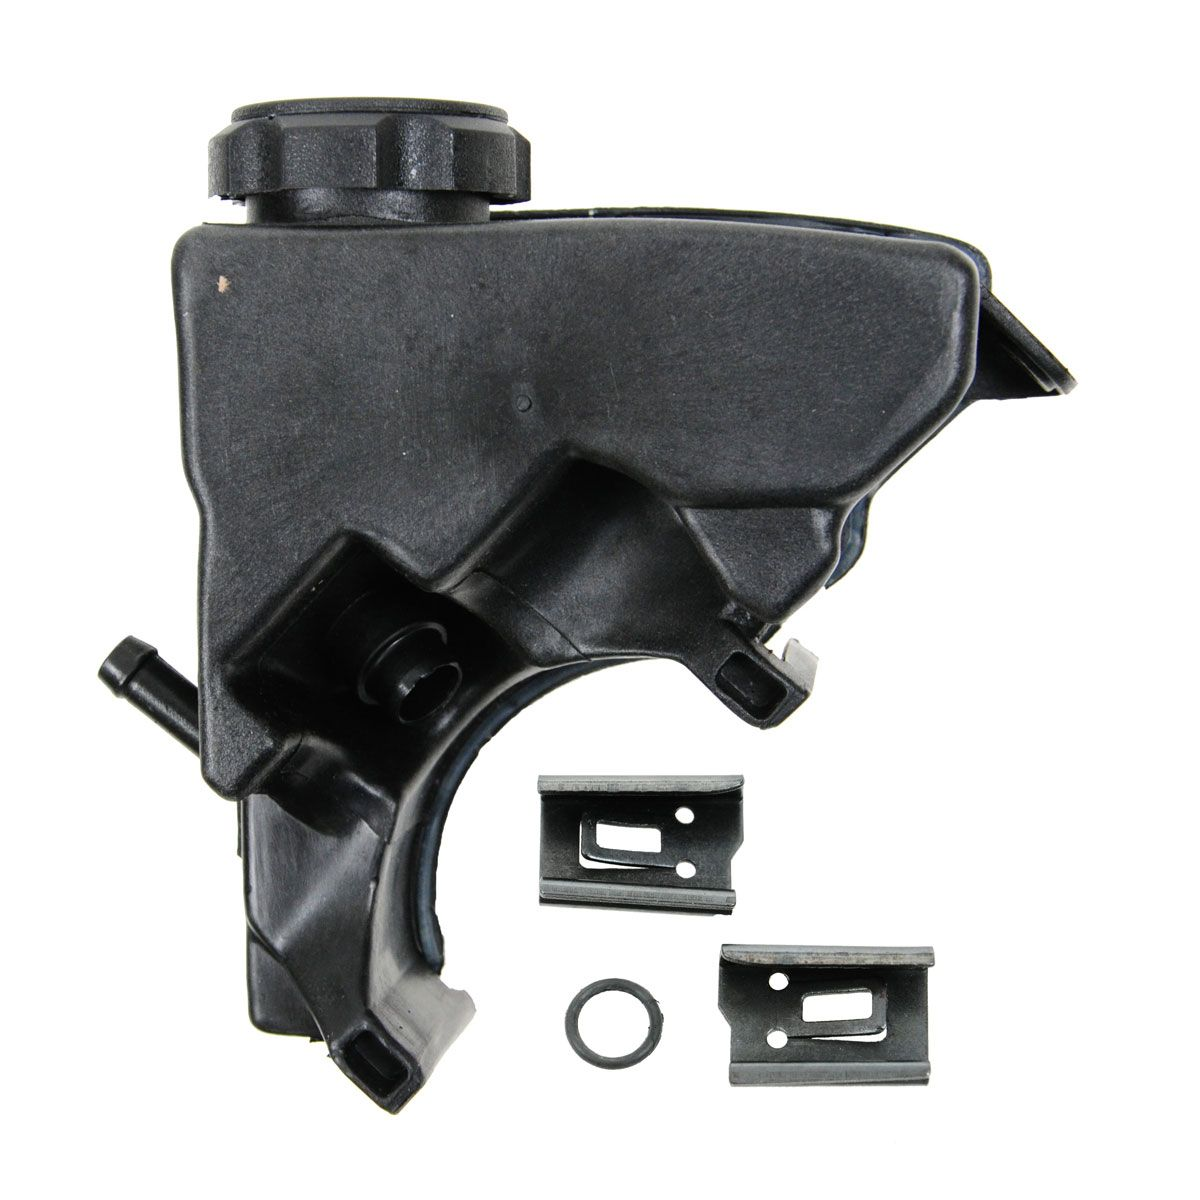 2005 Buick Regal For Sale: Power Steering Reservoir For Oldsmobile Chevy Buick